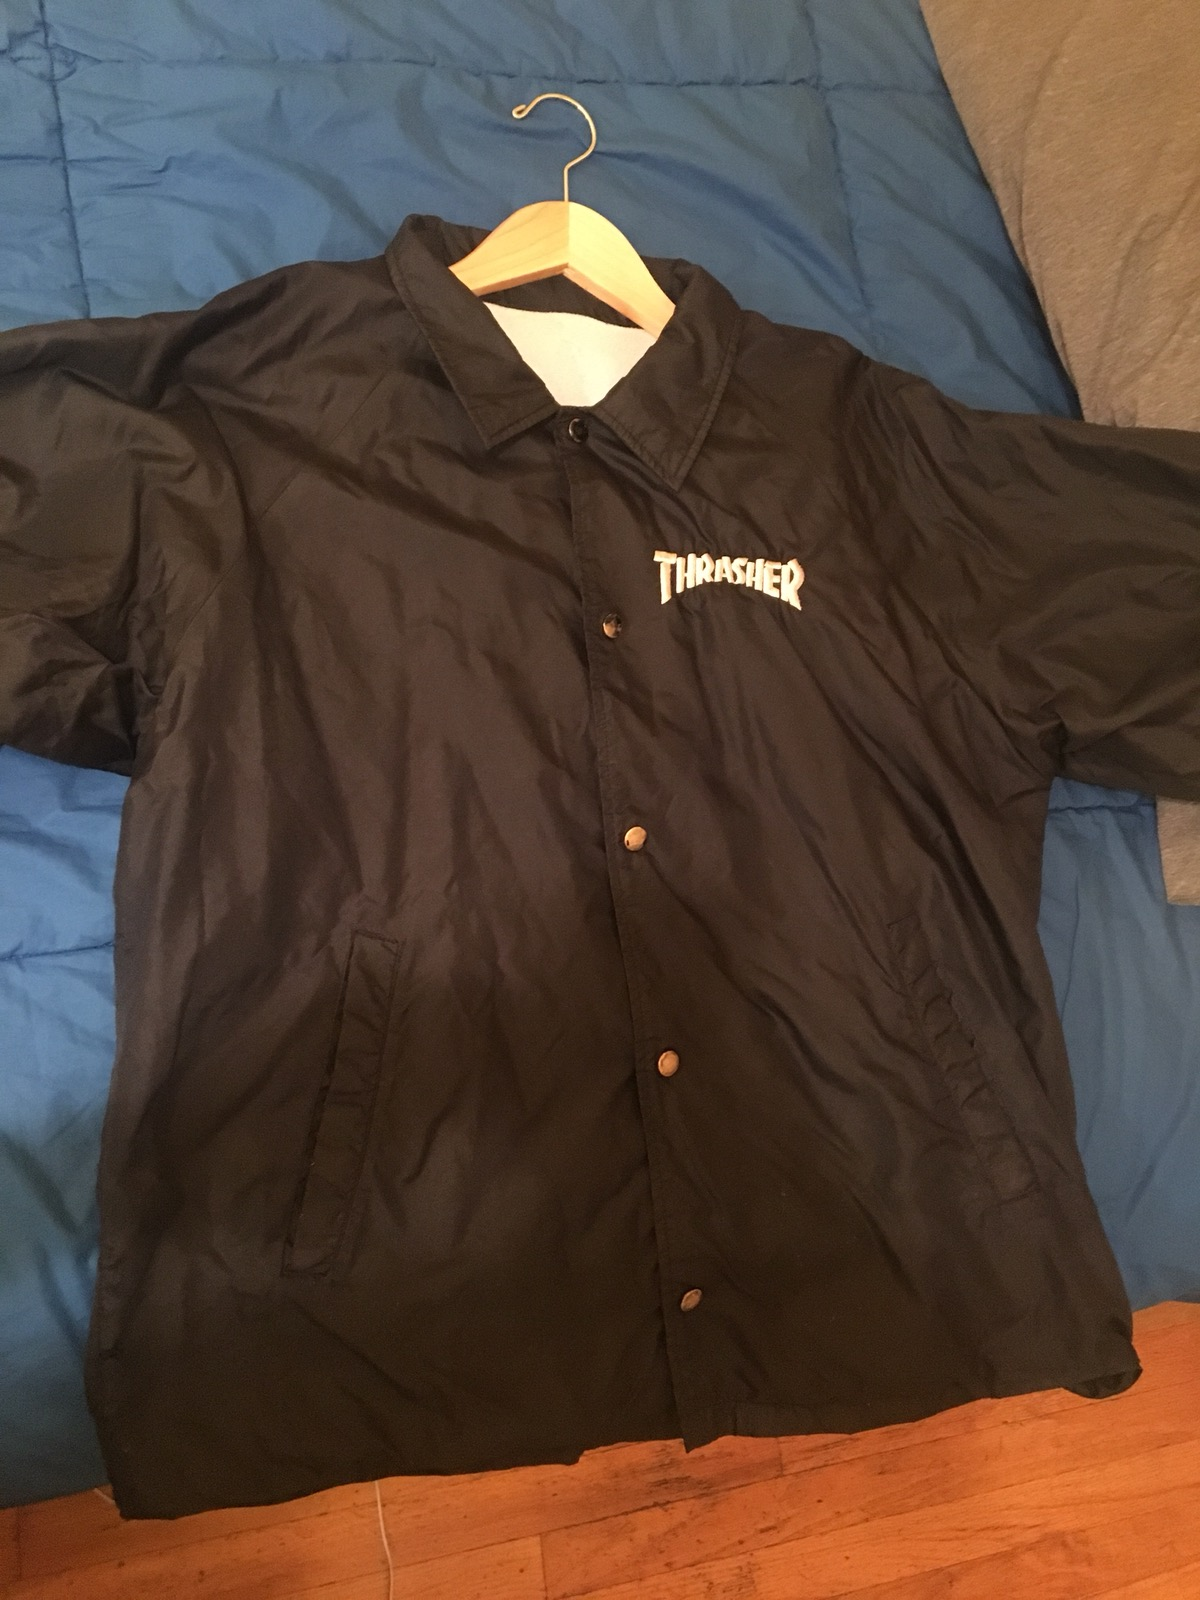 b143873ff43f Thrasher VINTAGE Thrasher Jacket From Mid 90 s Size l - Light Jackets for  Sale - Grailed